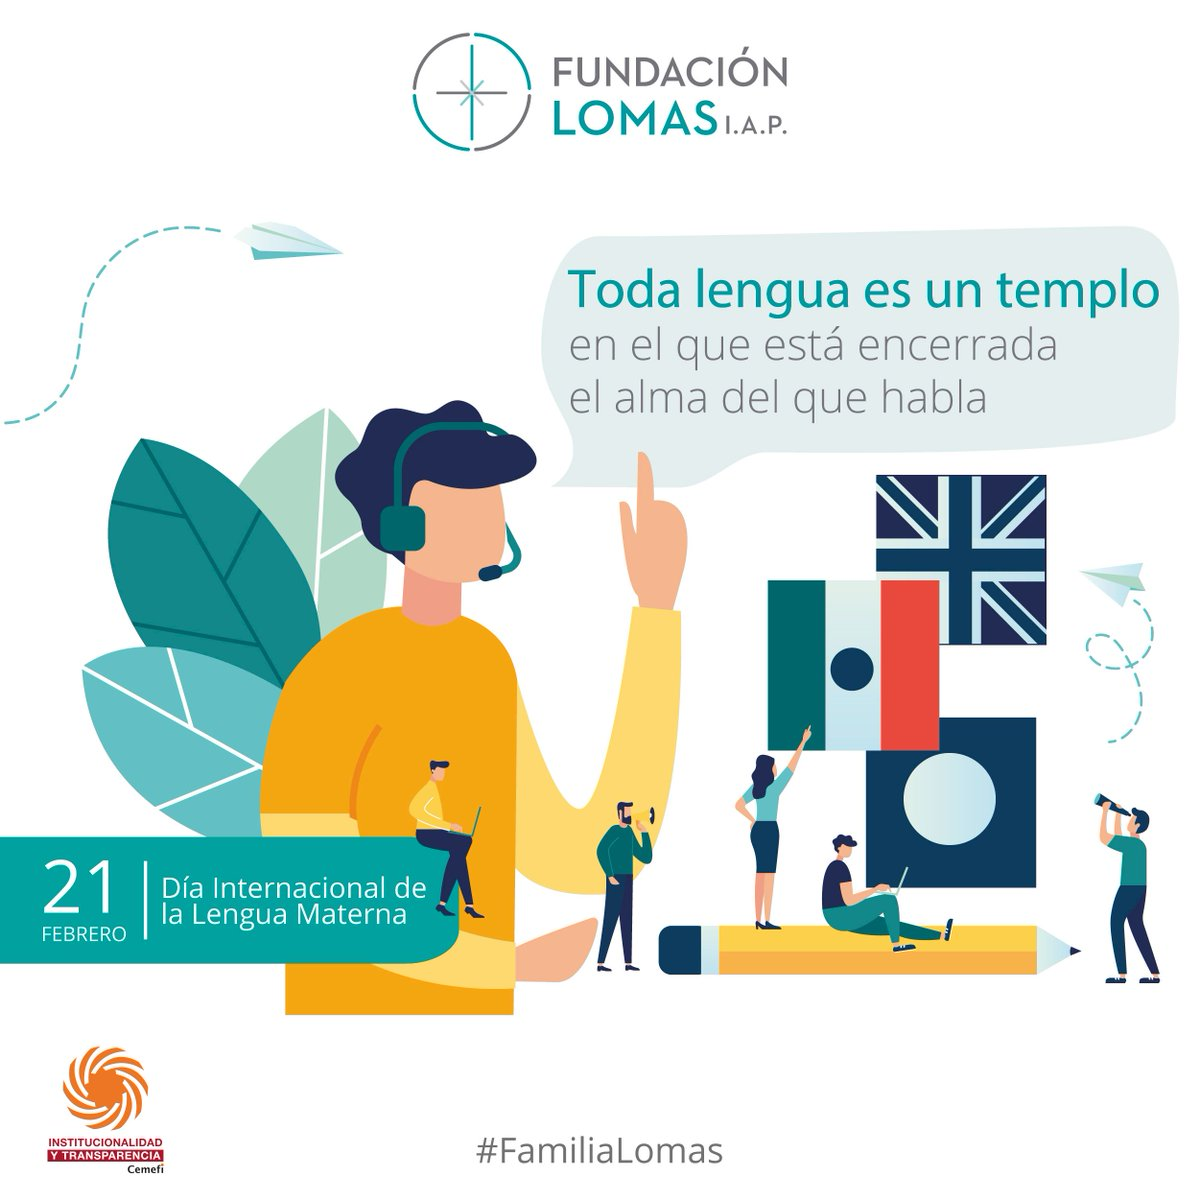 FundacionLomas photo